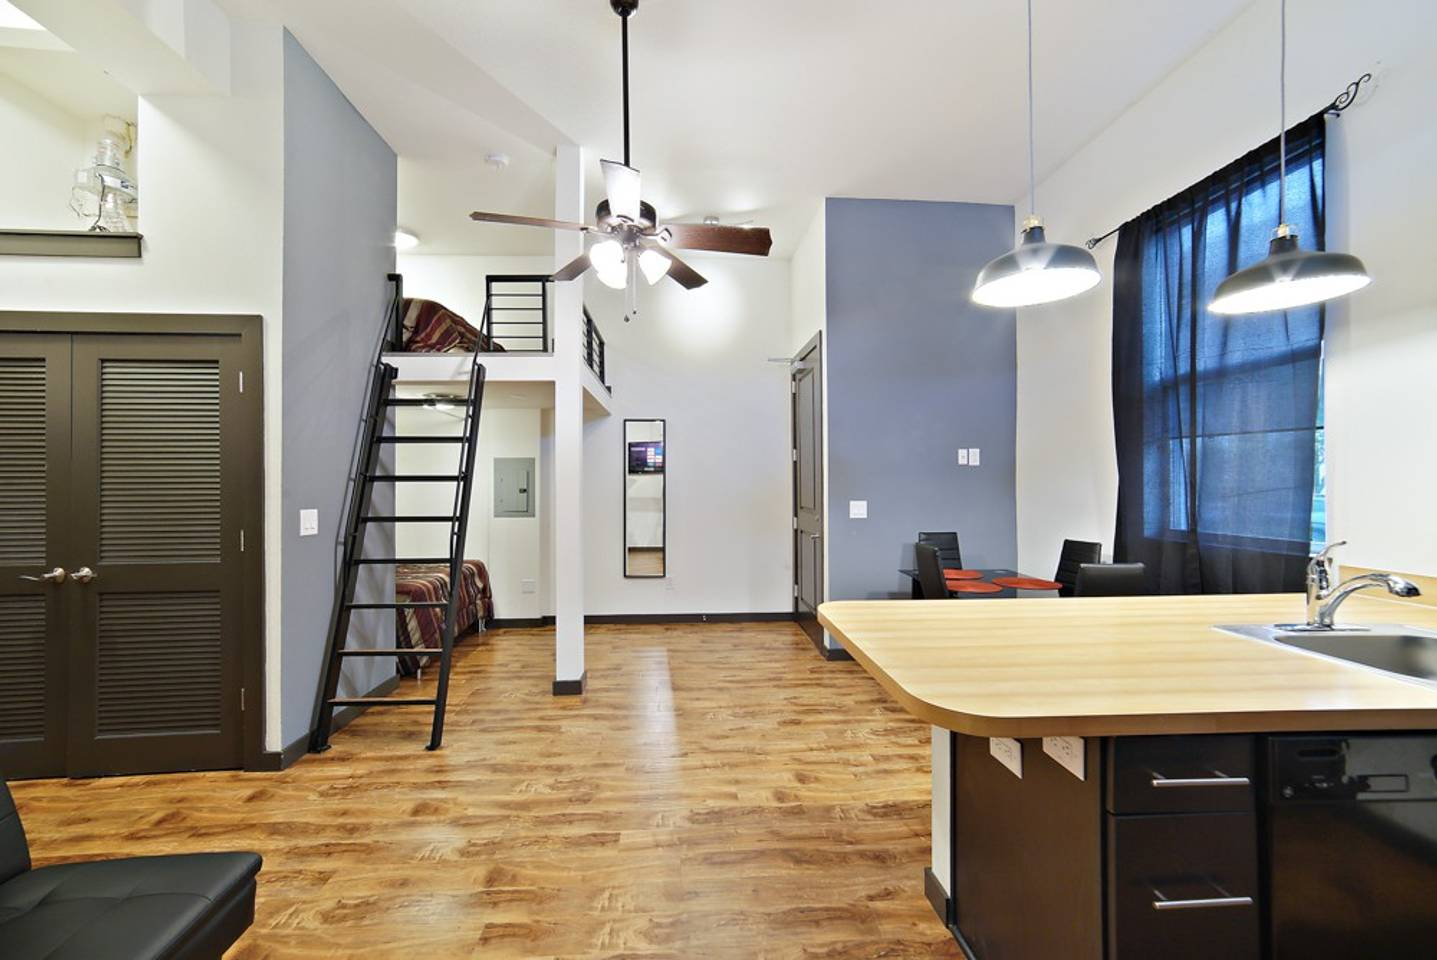 Loft Style Living in Downtown Tampa #103 photo 19380850